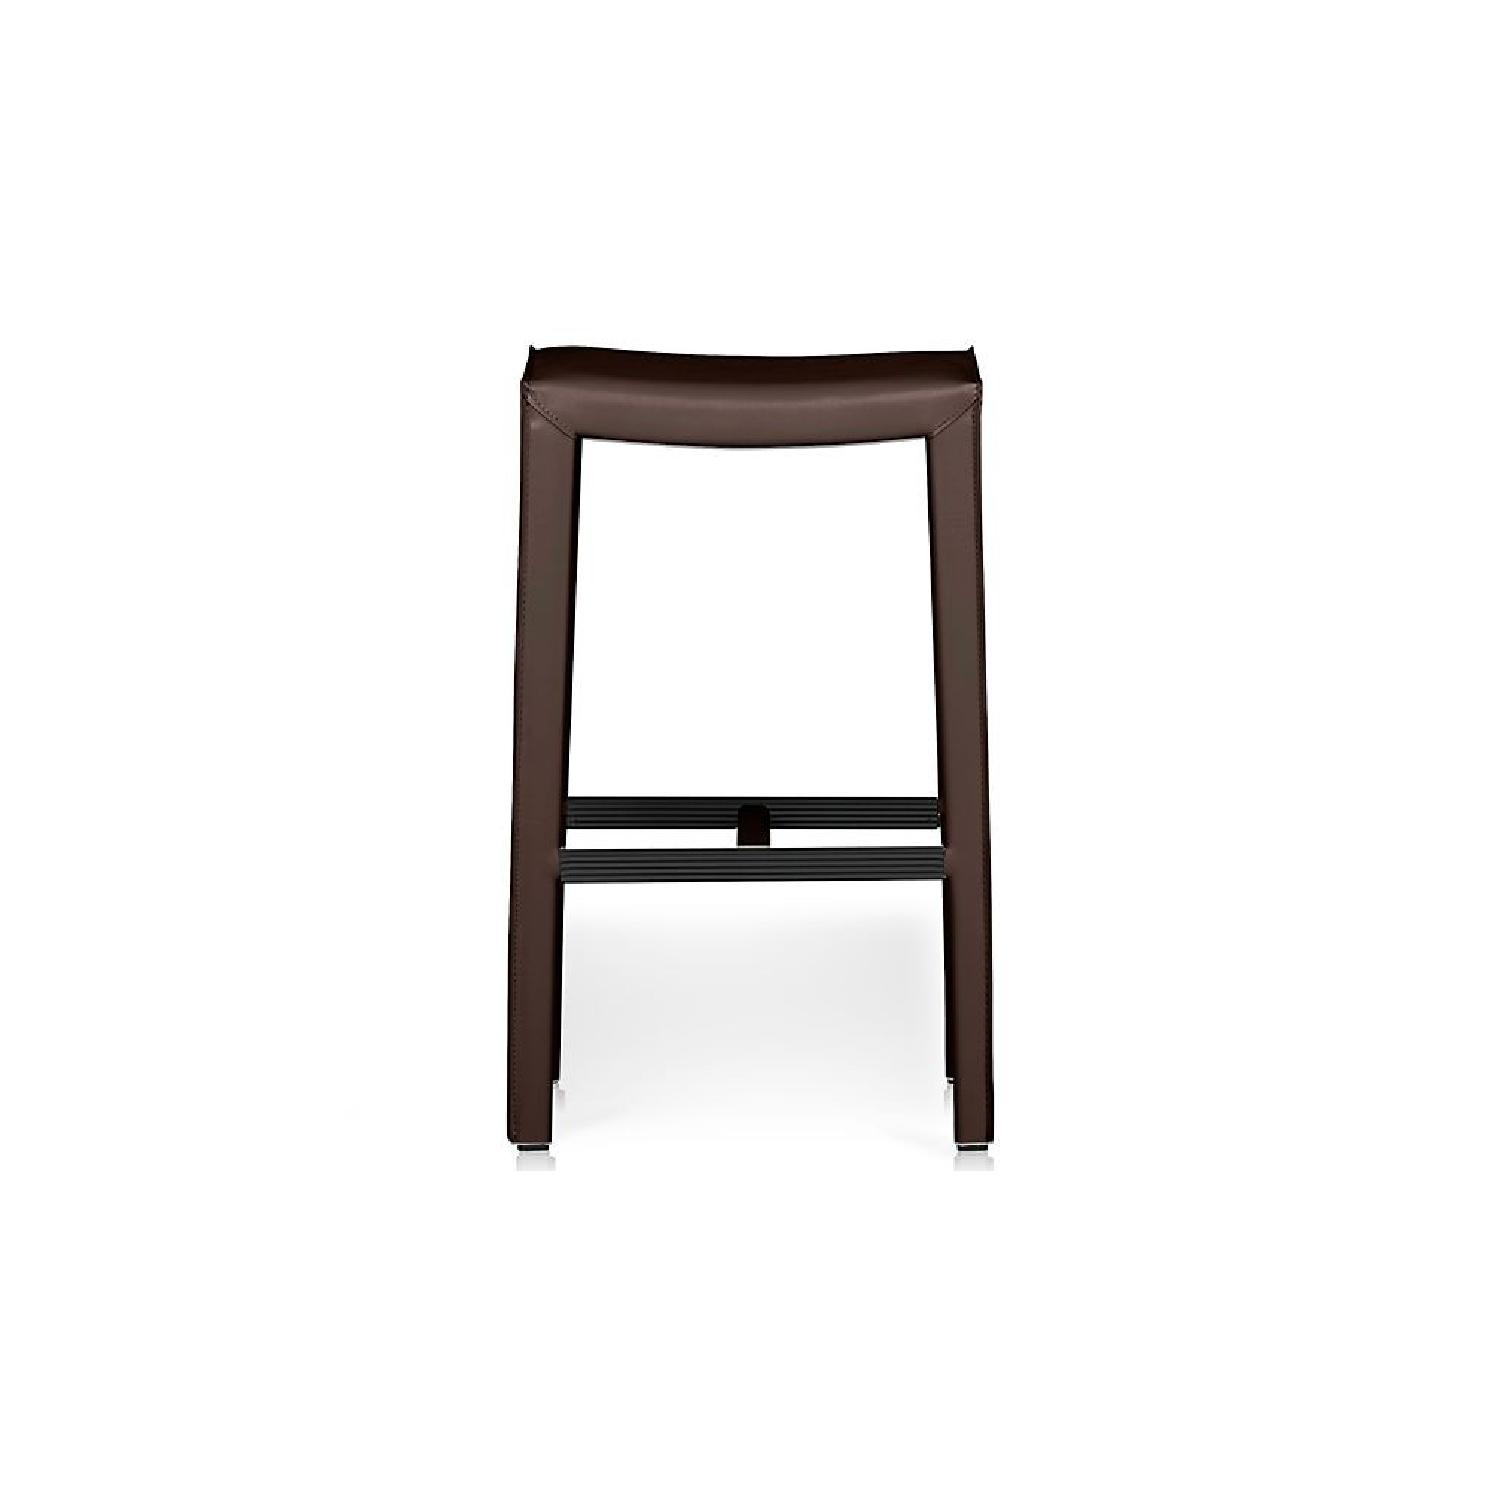 Crate & Barrel Folio Saddle Top-Grain Leather Bar Stools - image-0